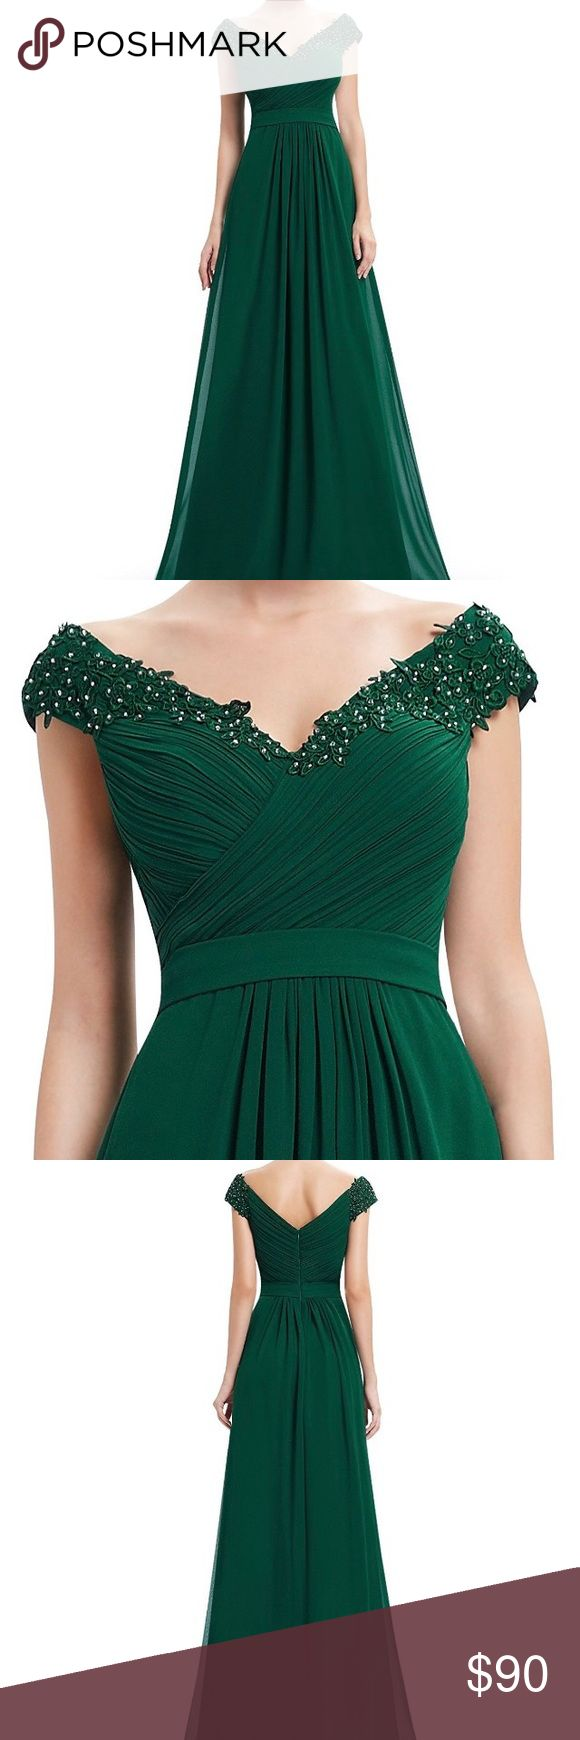 Ever Pretty Green Off The Shoulder Dress Never worn and has original tags. Pretty forest green. Accurate to size chart provided. Material and beading are very nice. Ever Pretty Dresses Prom